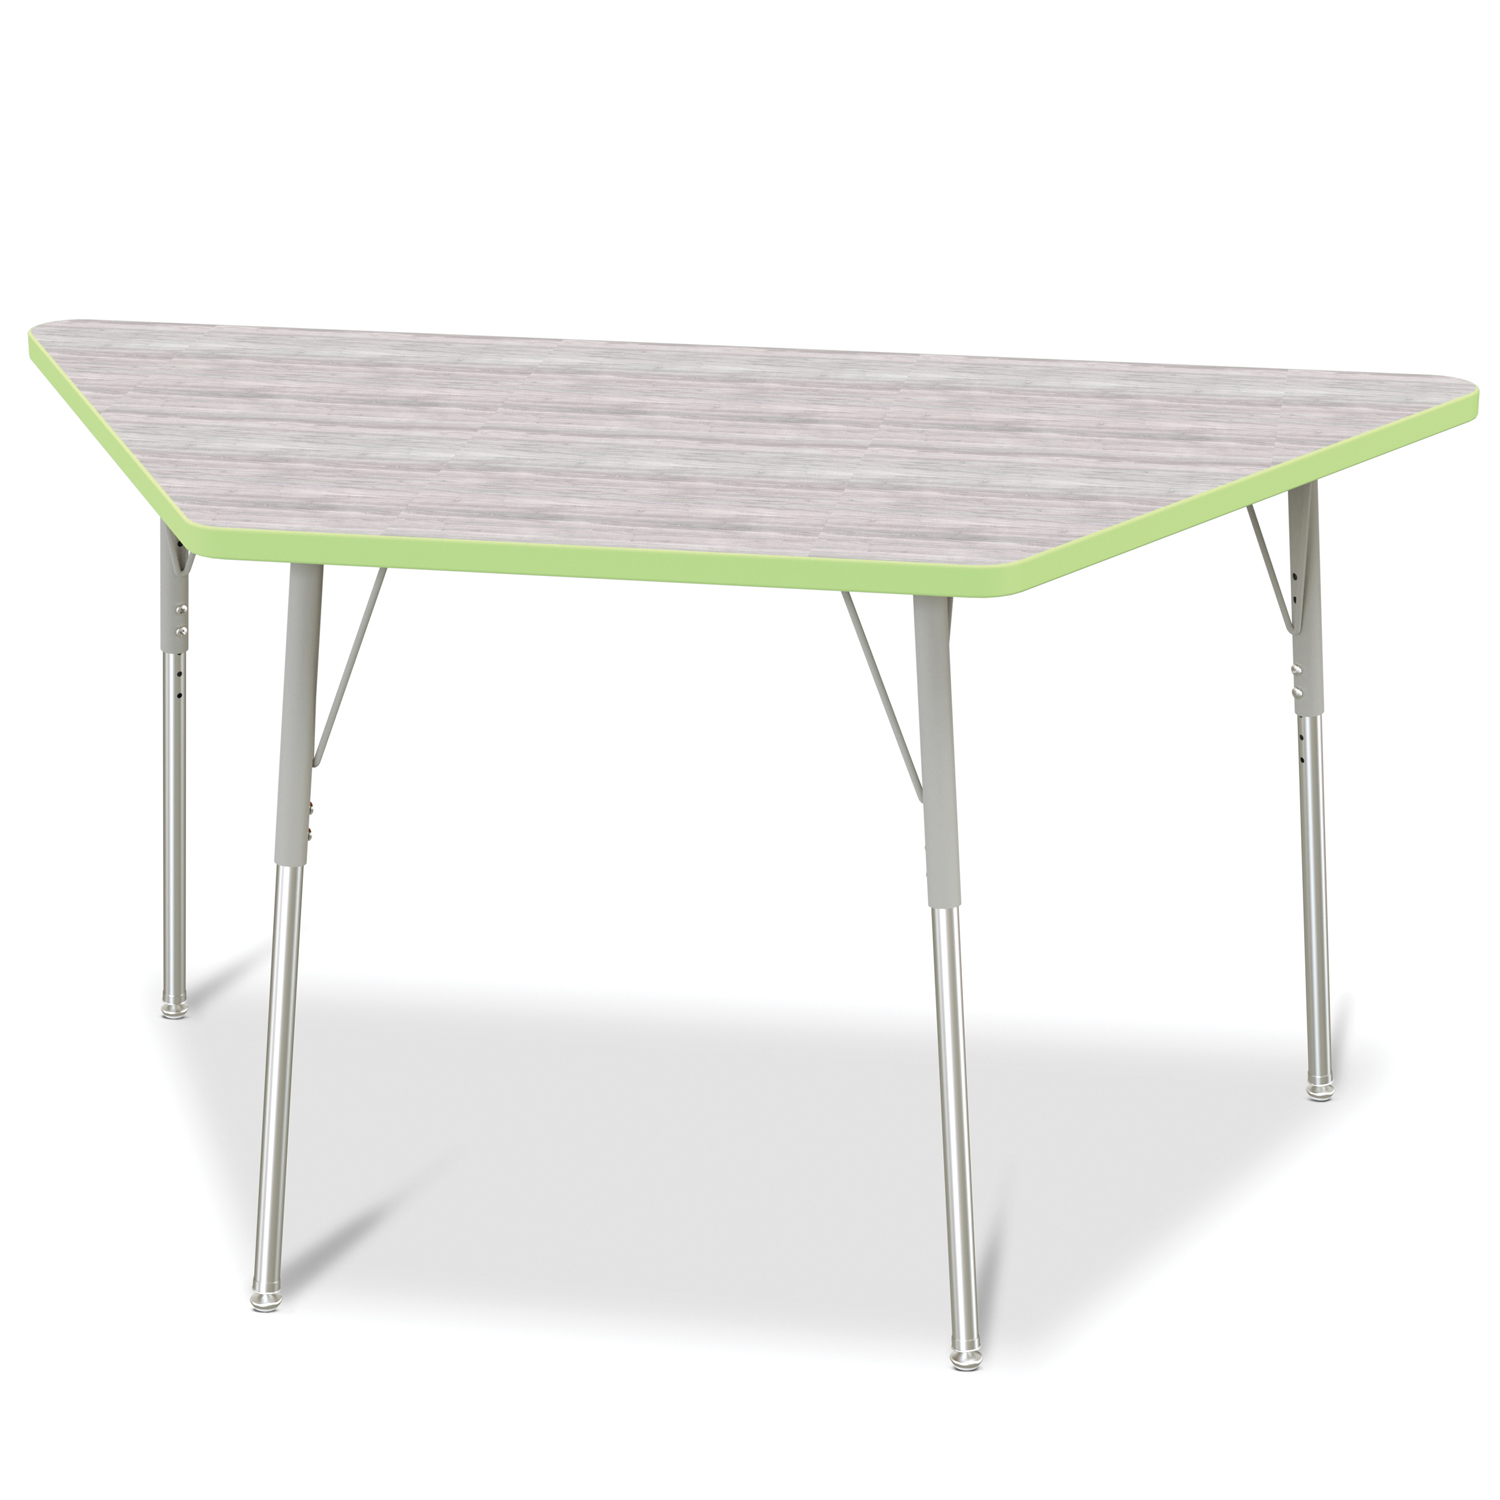 Gray//Blue//Blue 30 X 60 A-height Berries Kids Trapezoid Activity Tables